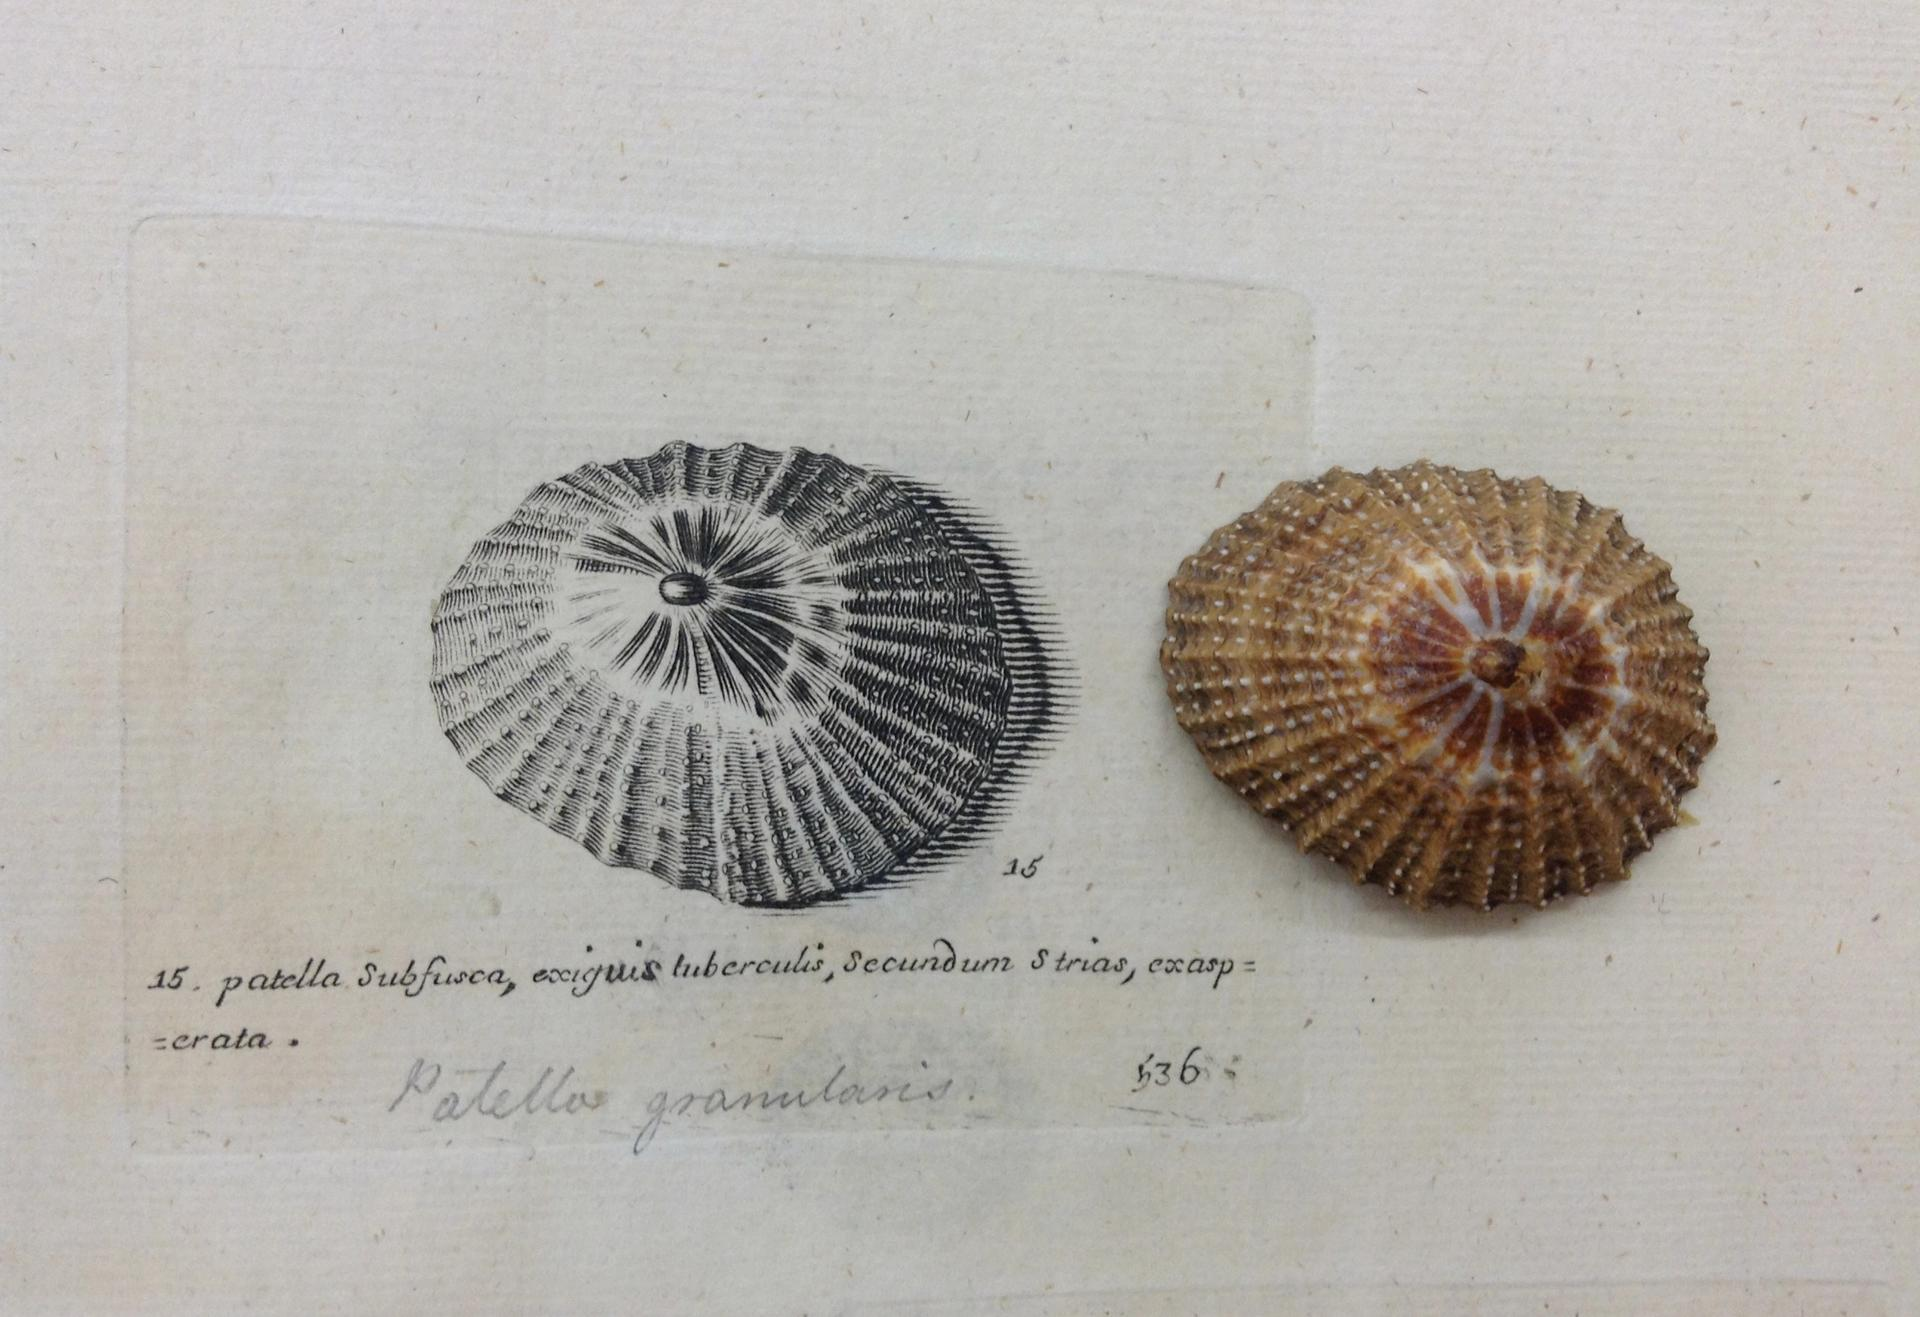 A Lister engraving (on the left) adjacent to a contemporary photograph of the limpetPatella granularis, a species of sea snail Courtesy of Bodleian Library